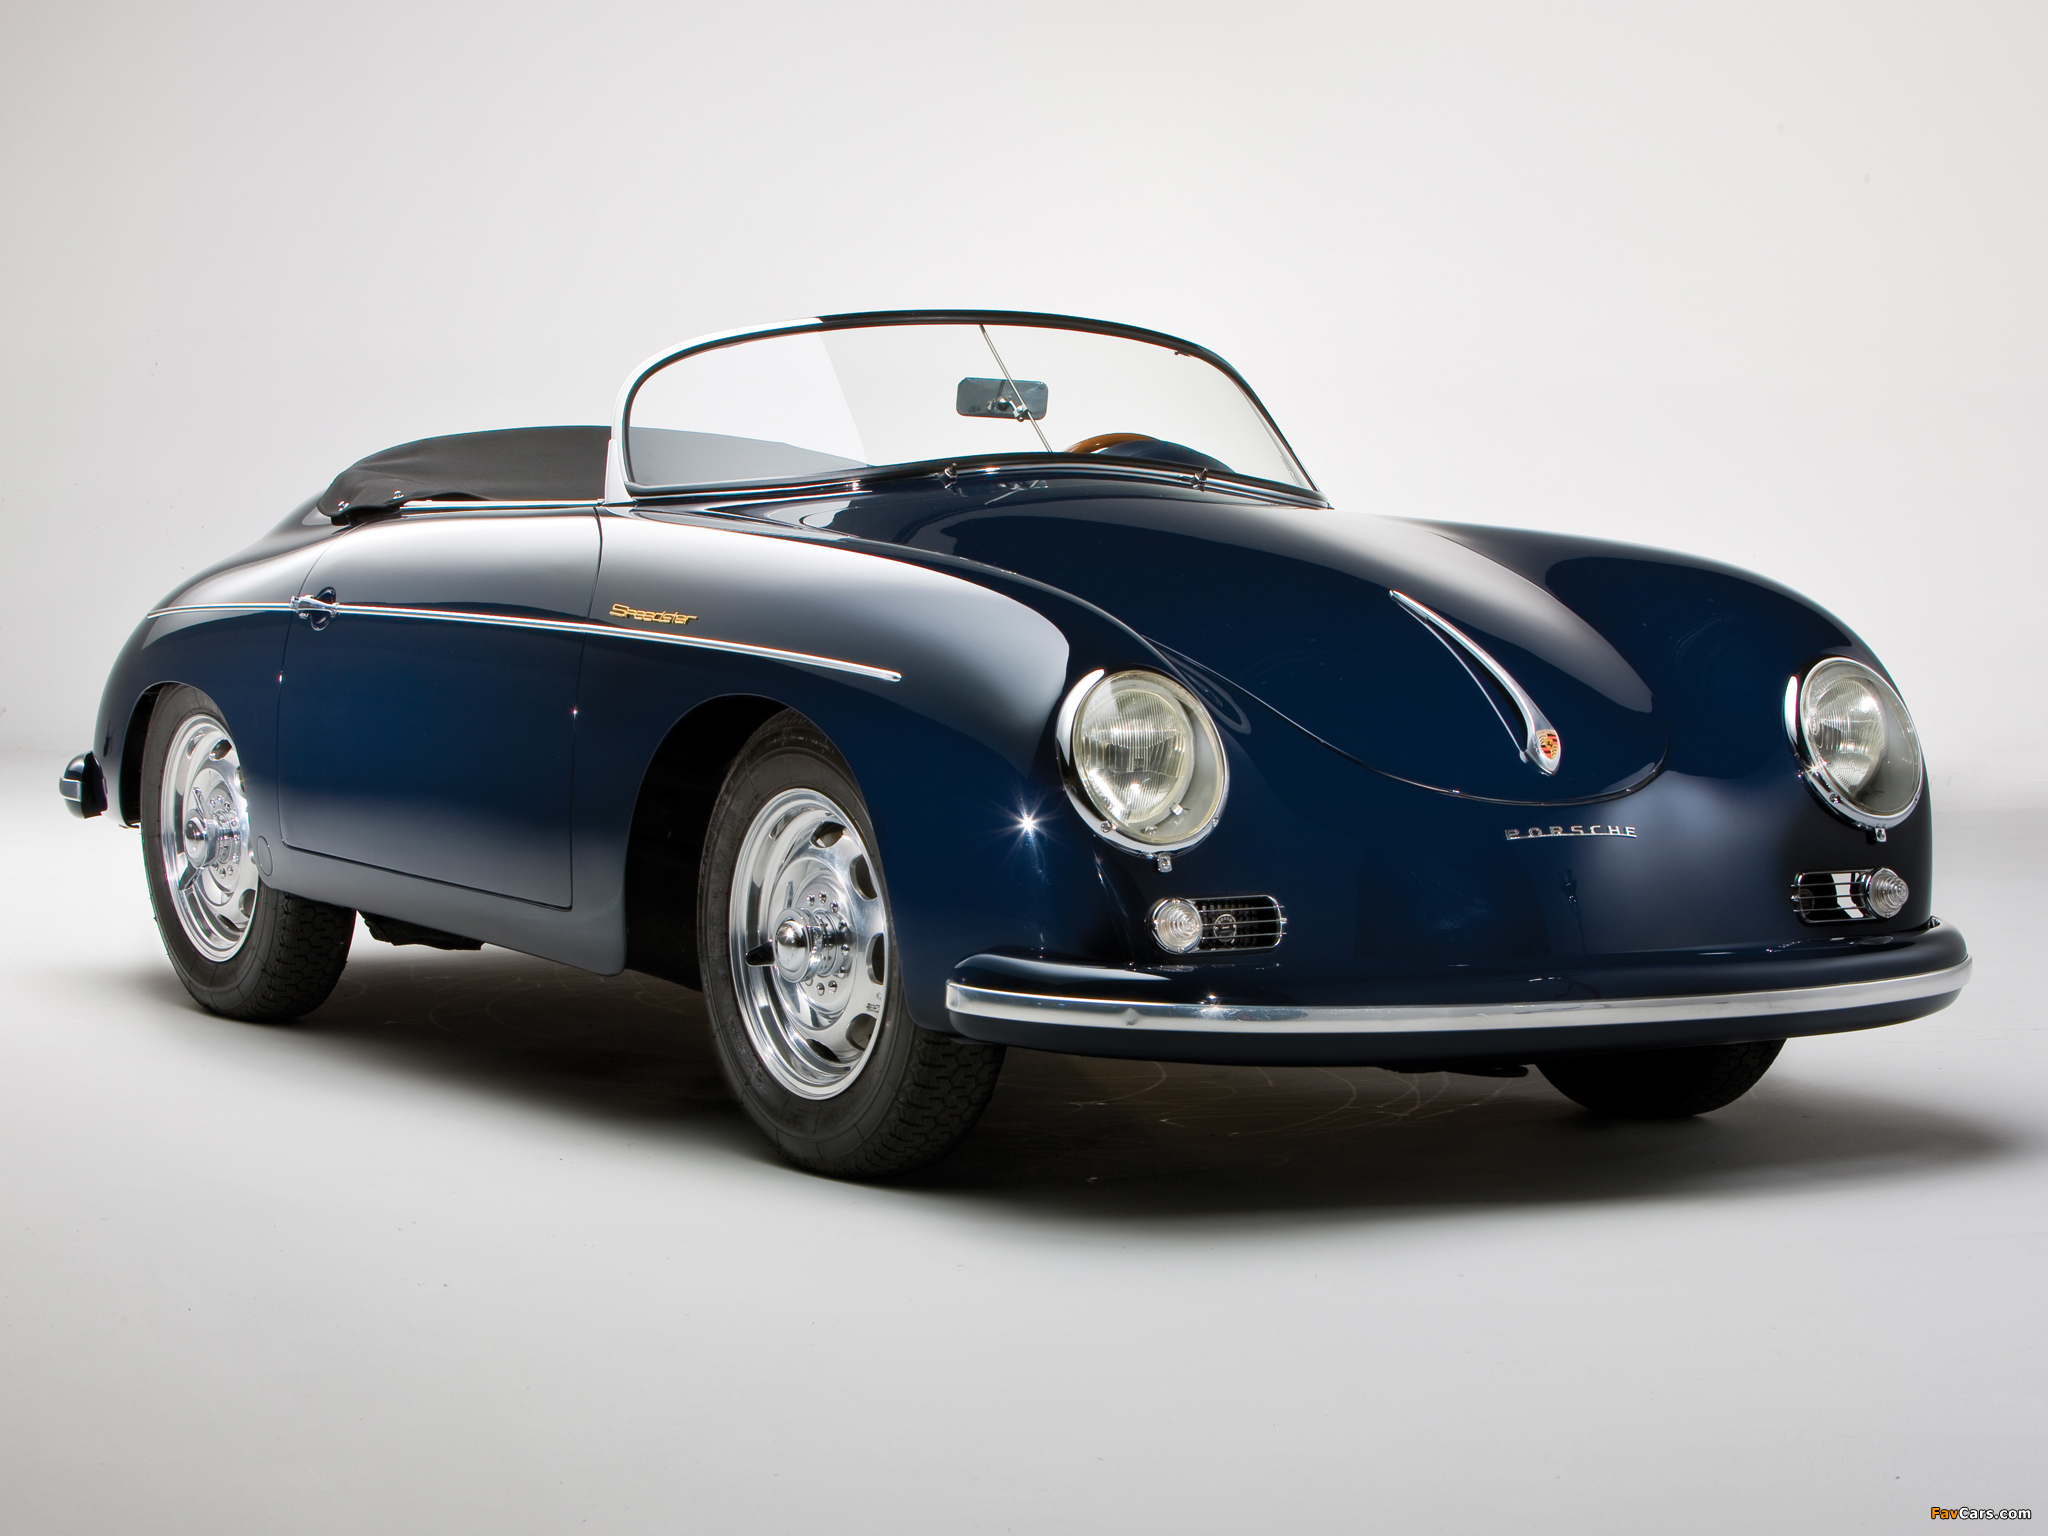 Porsche 356a 1600 Speedster 1956 58 Wallpapers 2048x1536